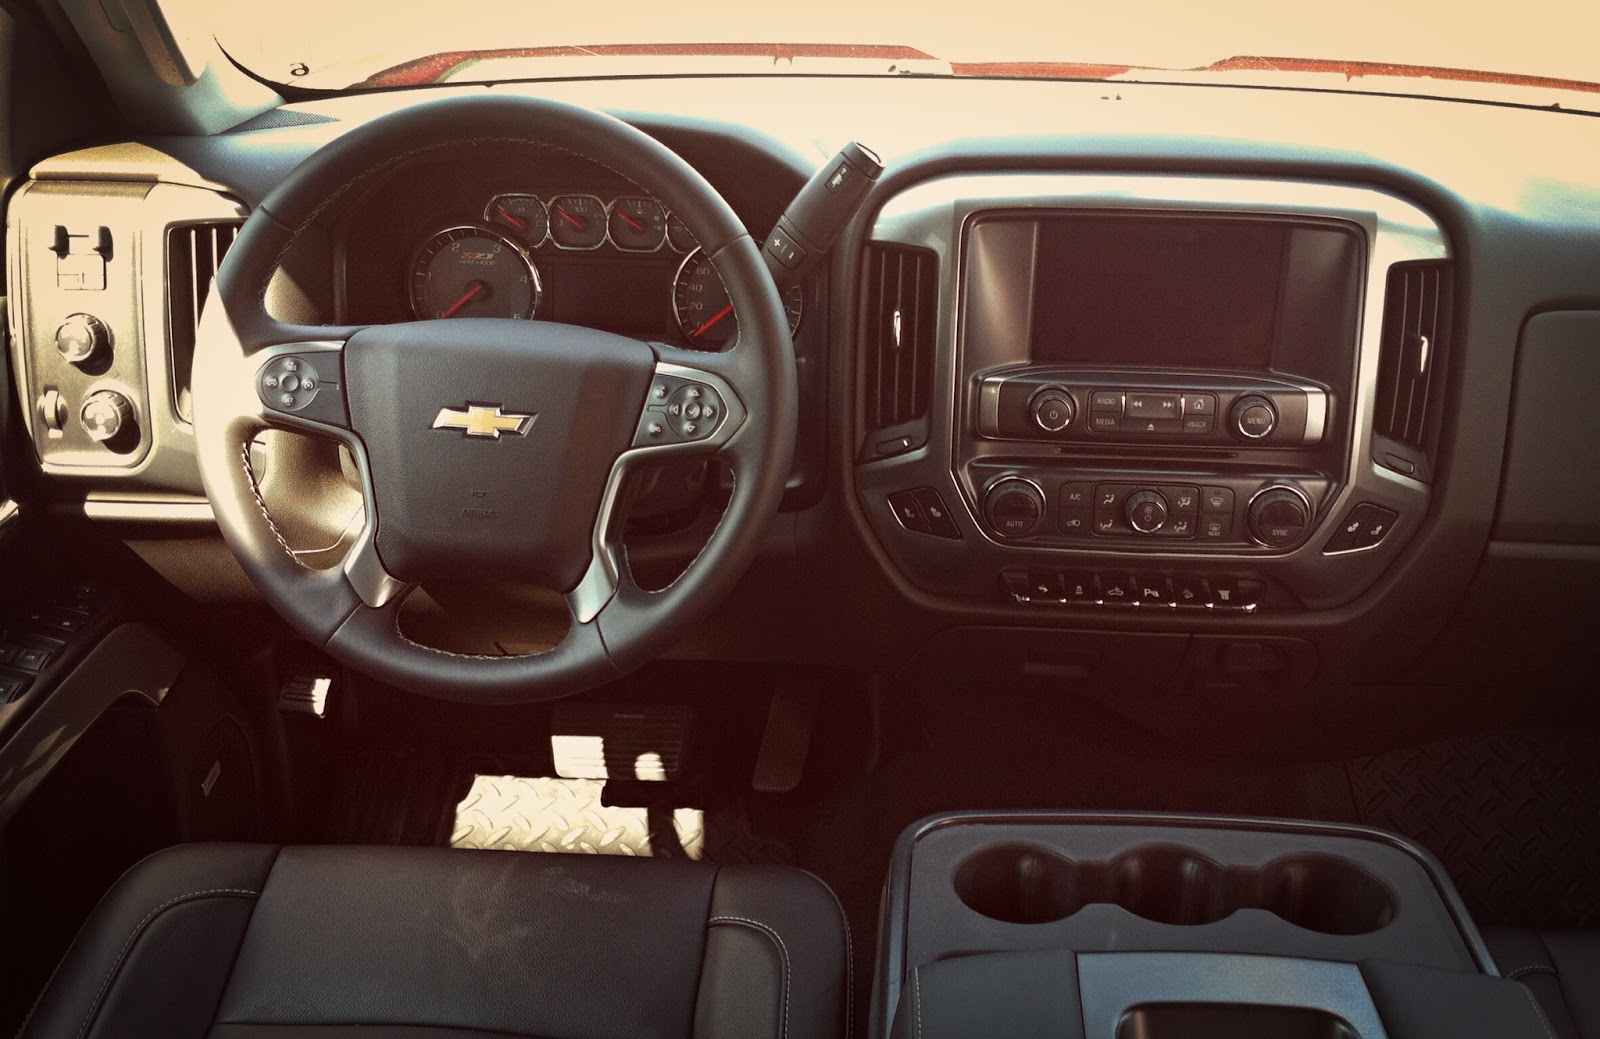 2014 Chevrolet Silverado HD LT interior